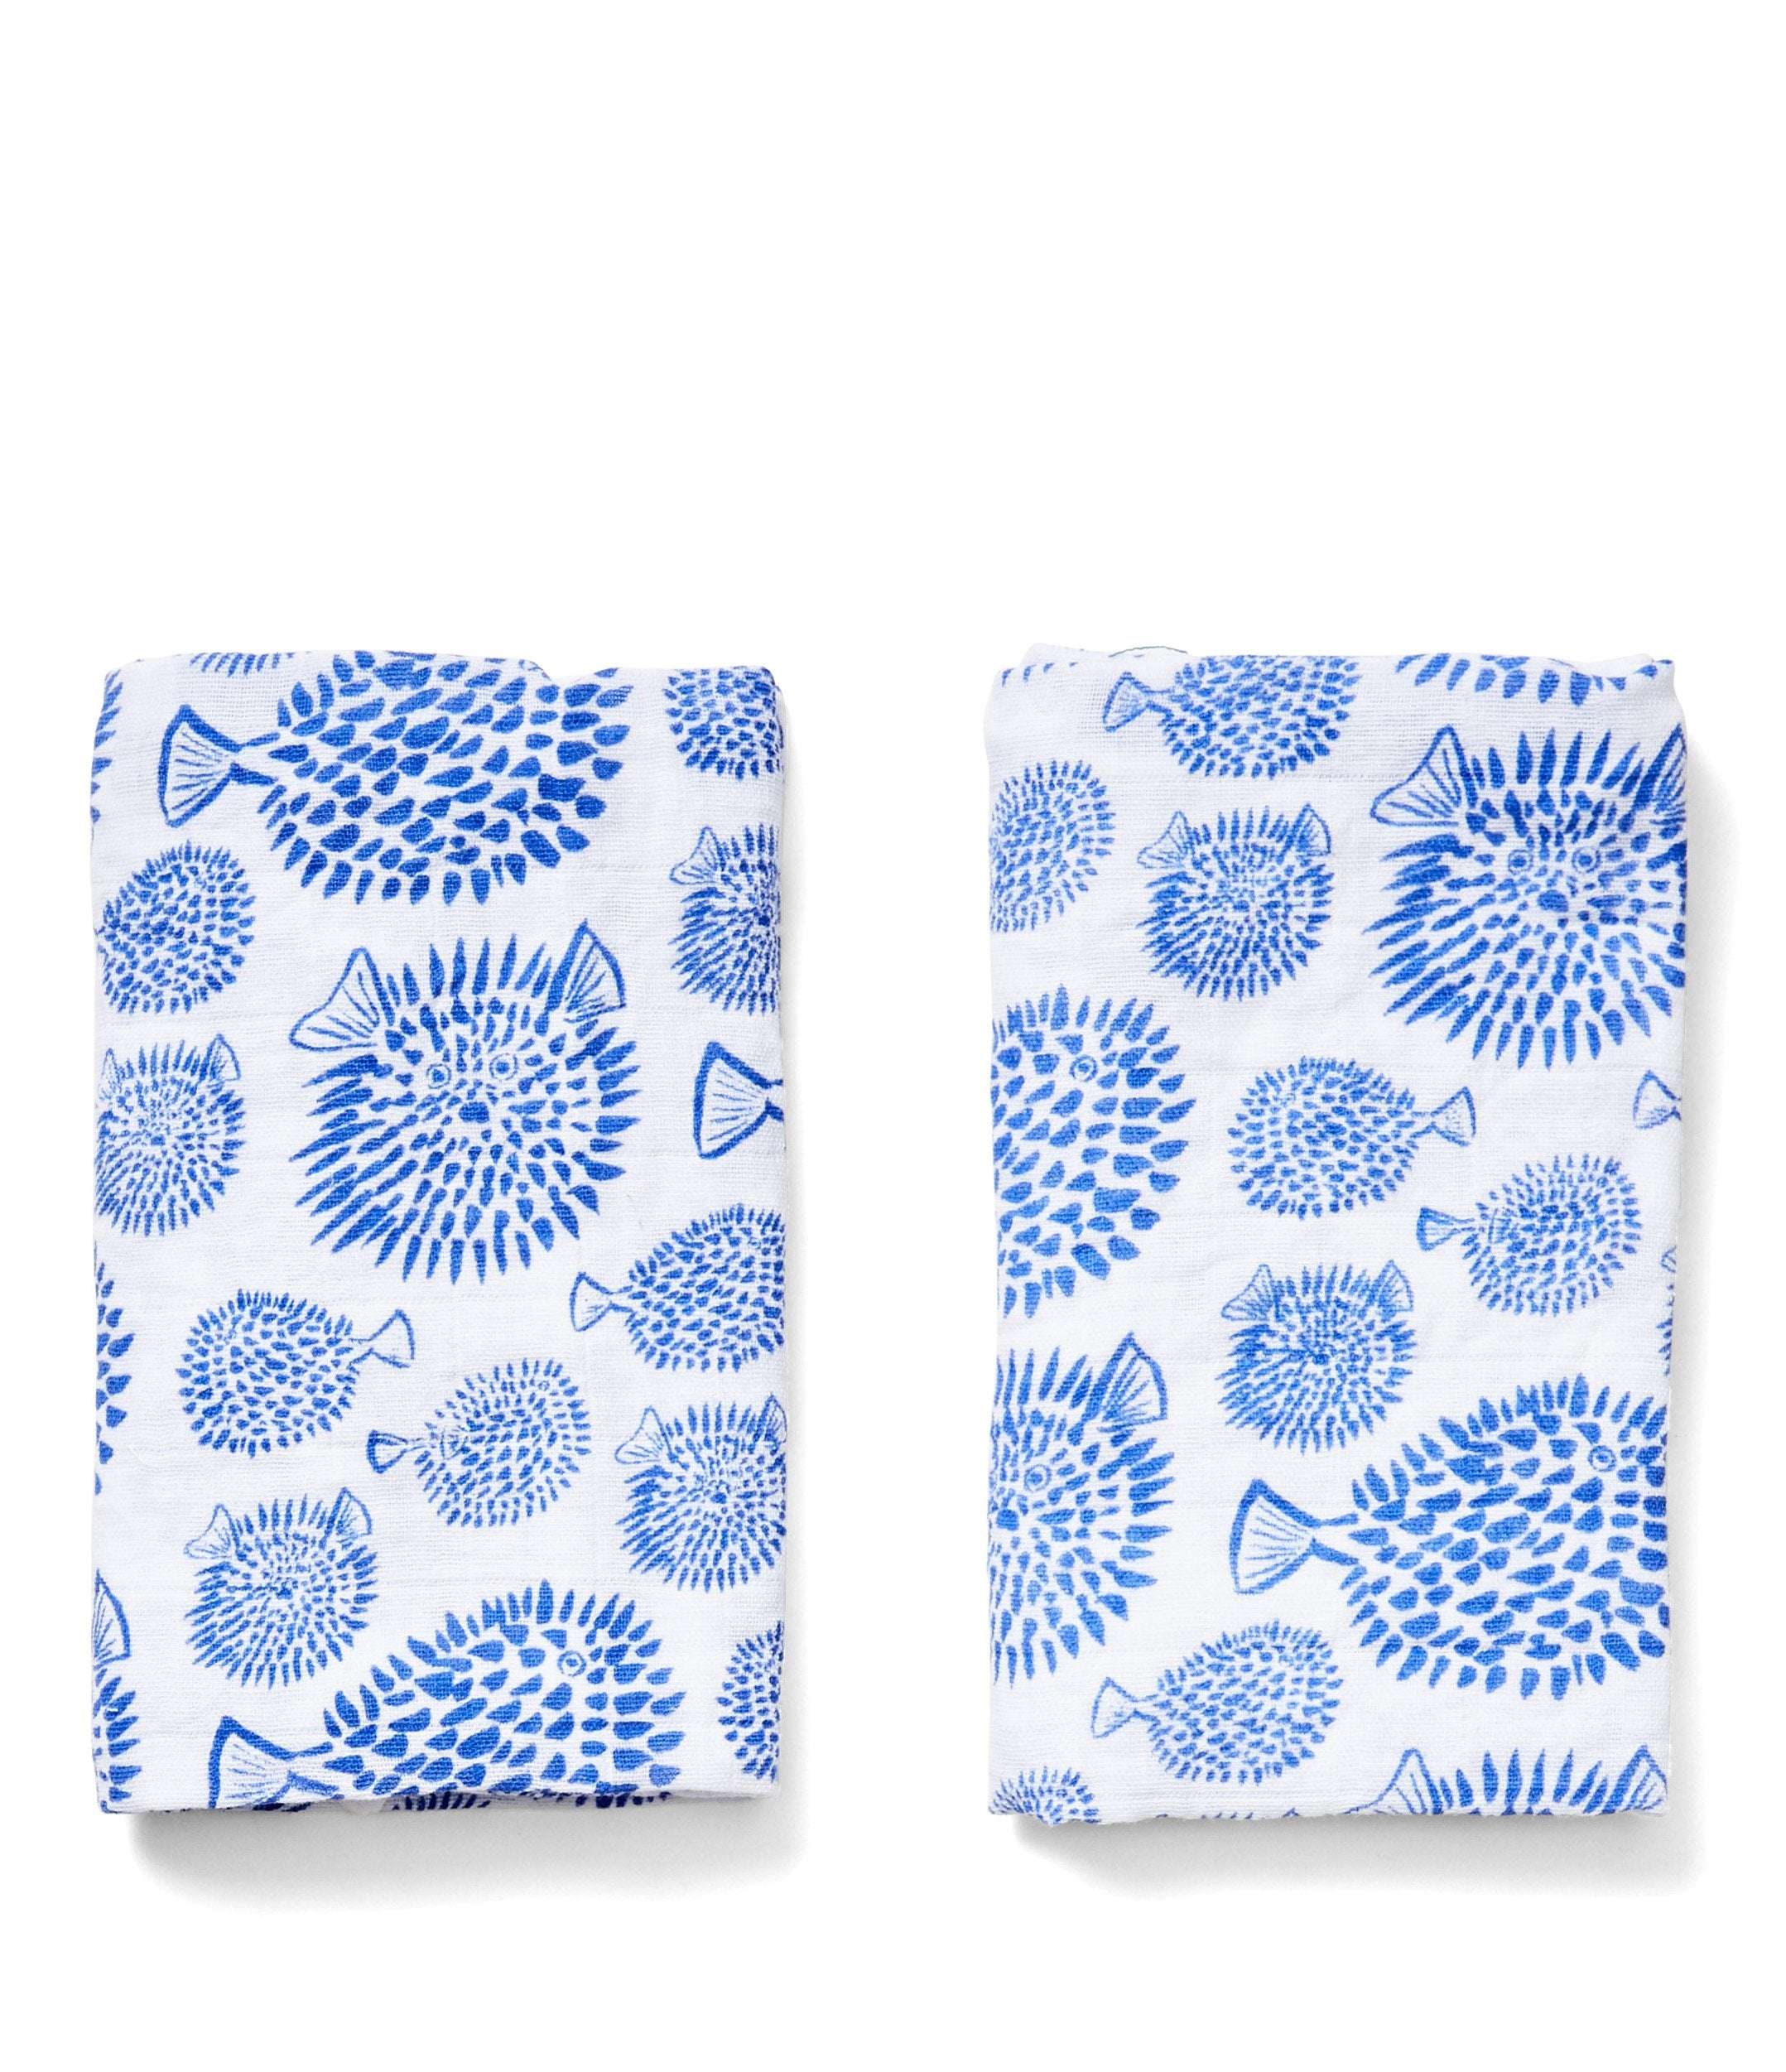 organic cotton burp cloth set blowfish print